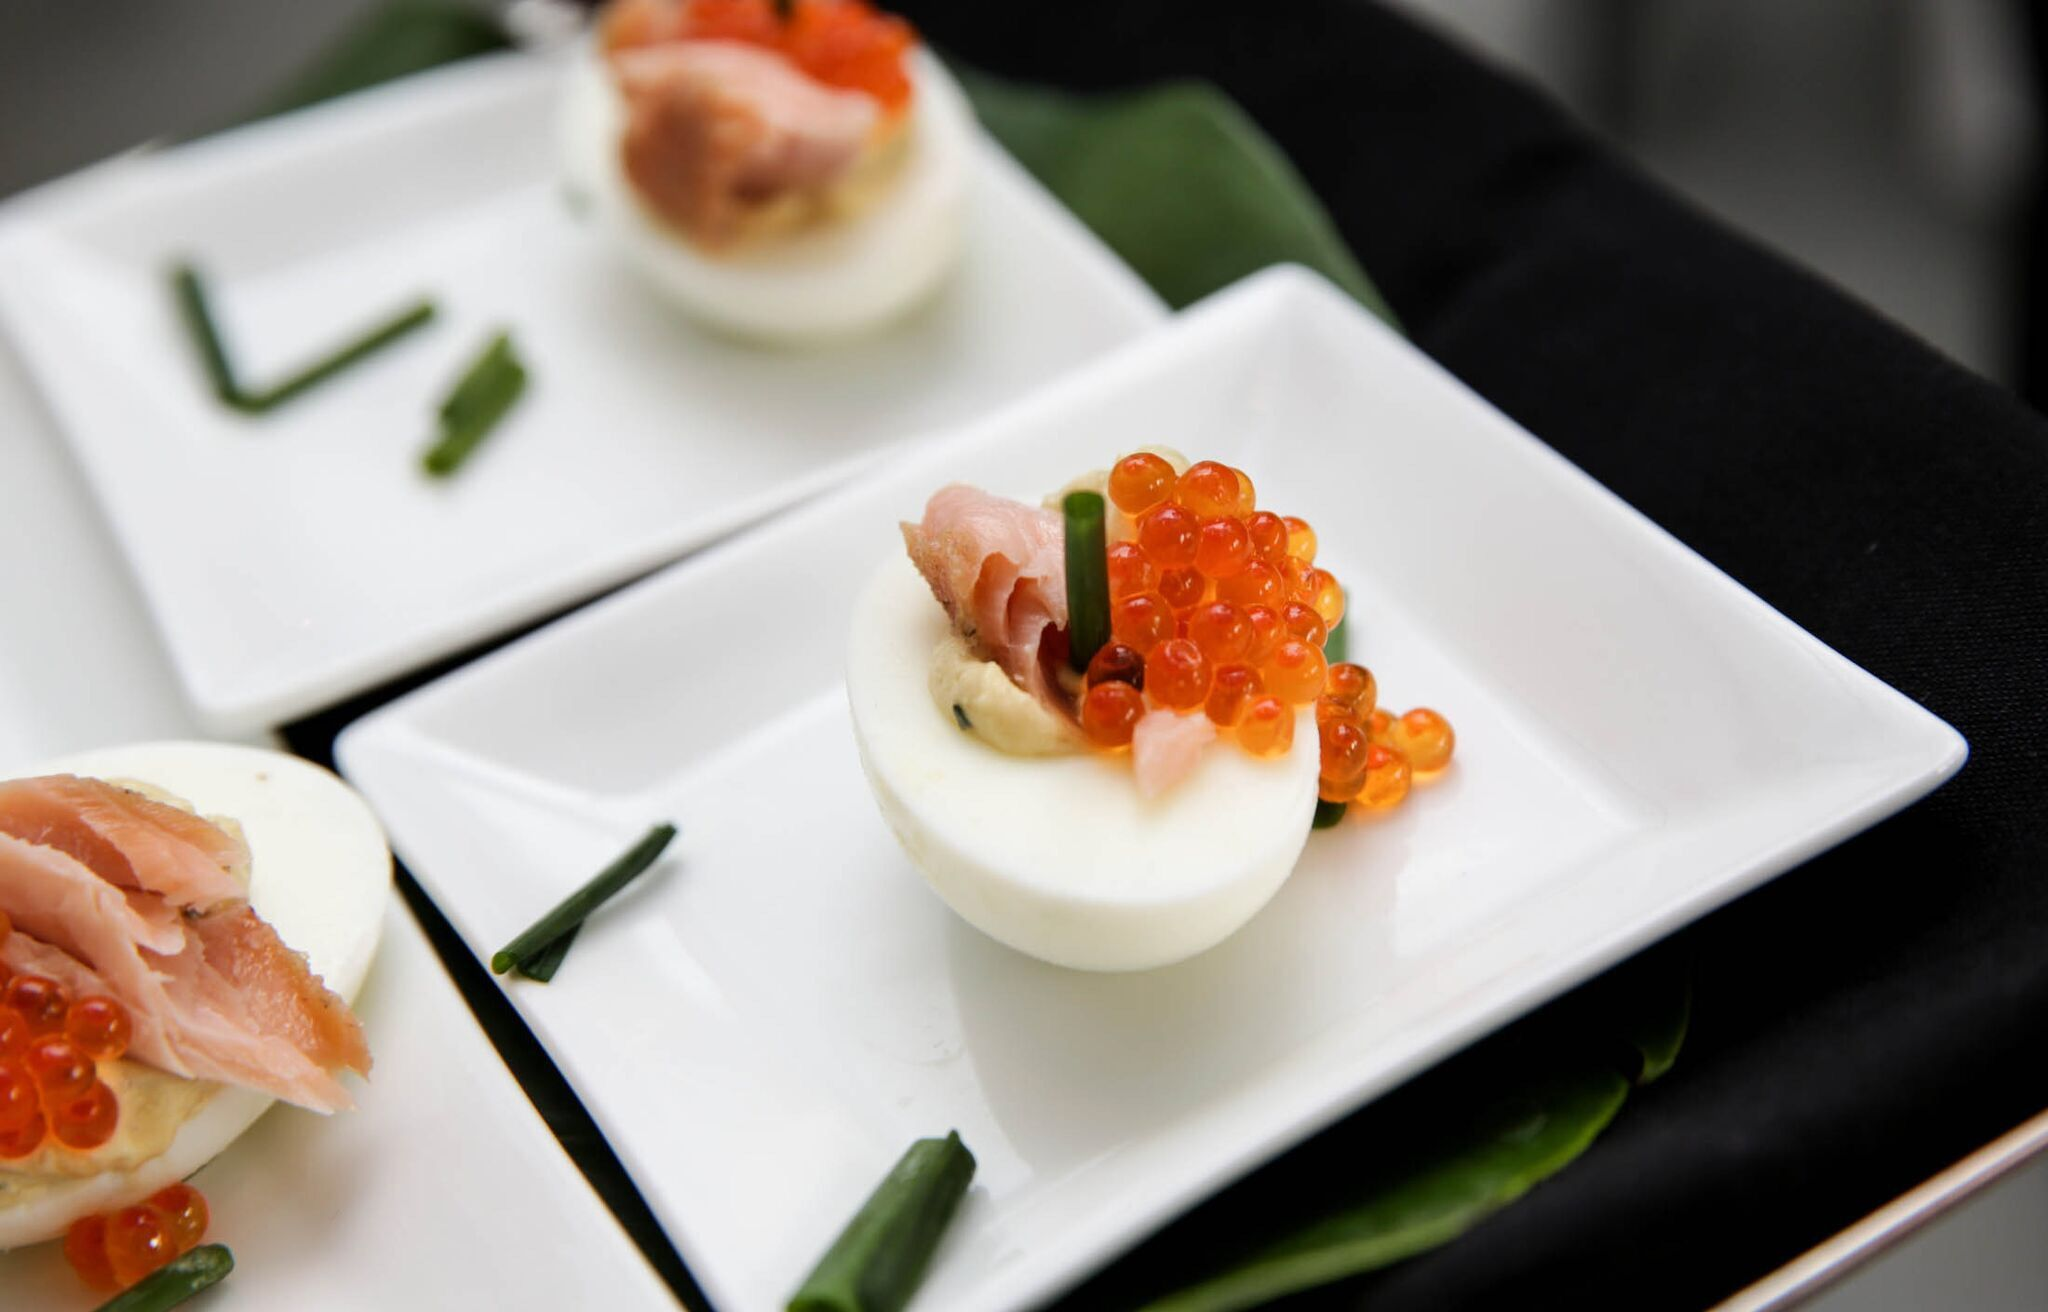 Chez Montier deviled eggs with house smoked salmon and salmon caviar. #chezmontier #chef #atlantafoodie #appetizer #deviledeggs #smokedsalmon #caviar